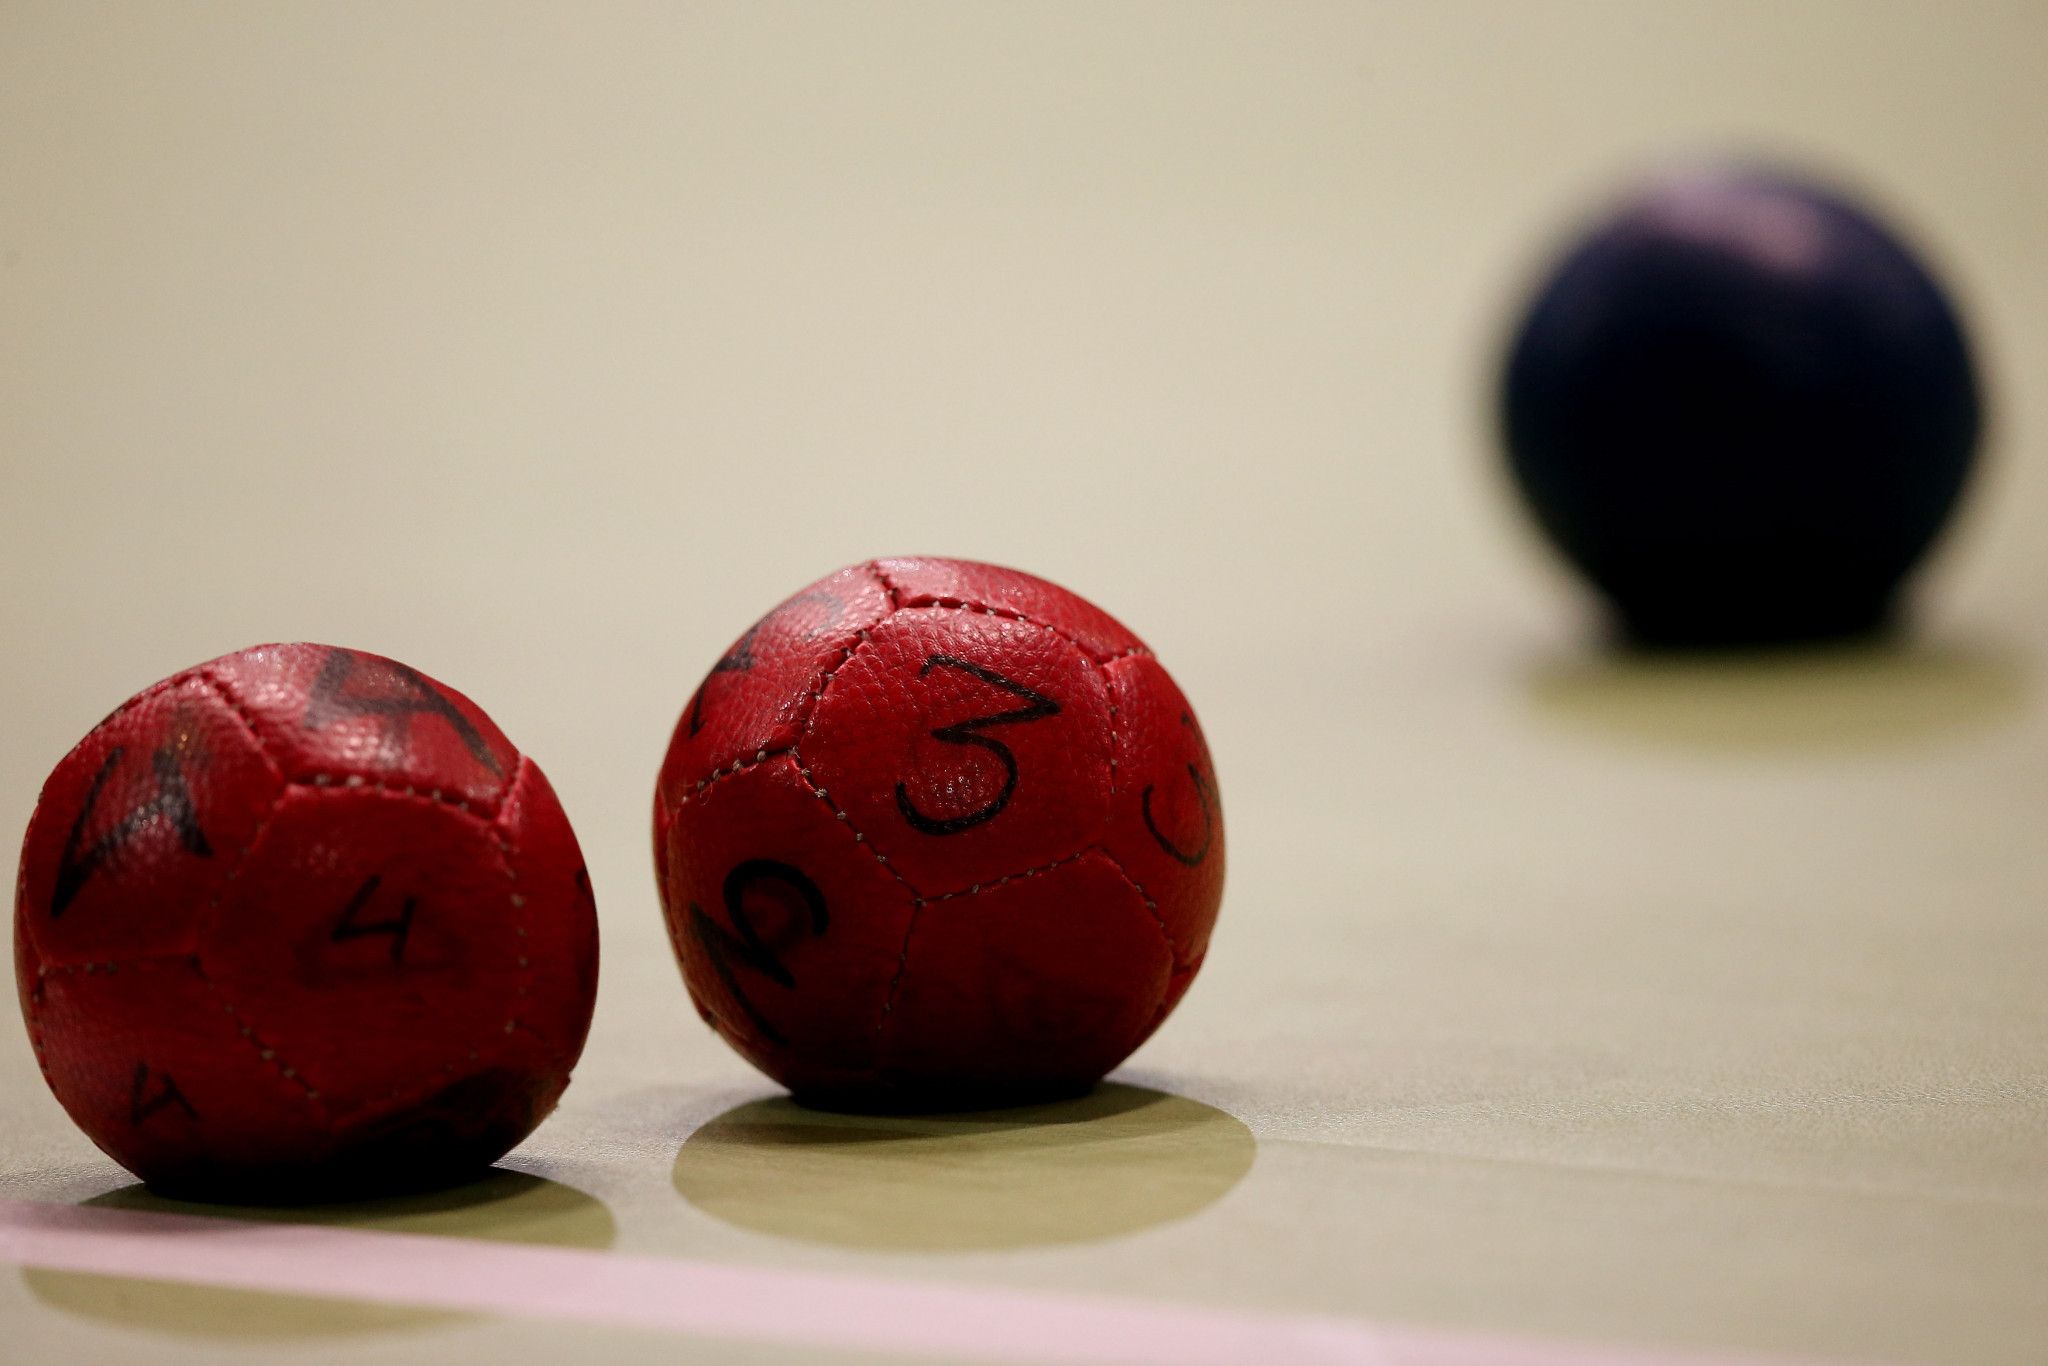 Despite a protest petition numbering more than 2,000 signatures, BISFed is going ahead with a plan to license production of boccia balls at international level following widespread instances of them being manipulated for unfair advantage ©BISFed